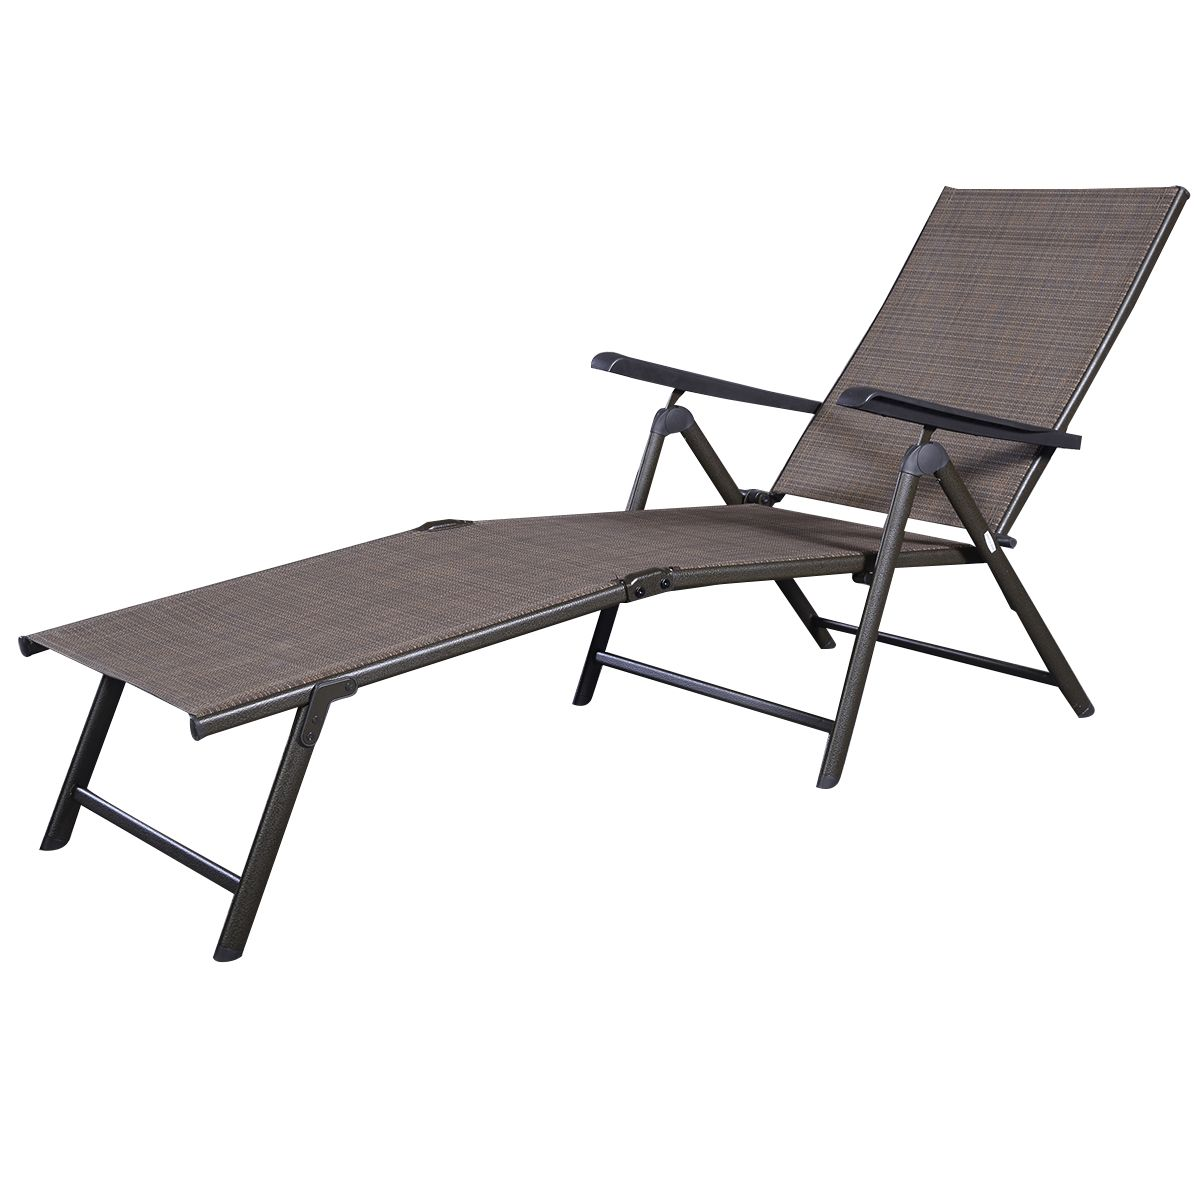 Aluminum folding beach bed beach chair pinterest for Beach chaise lounge folding